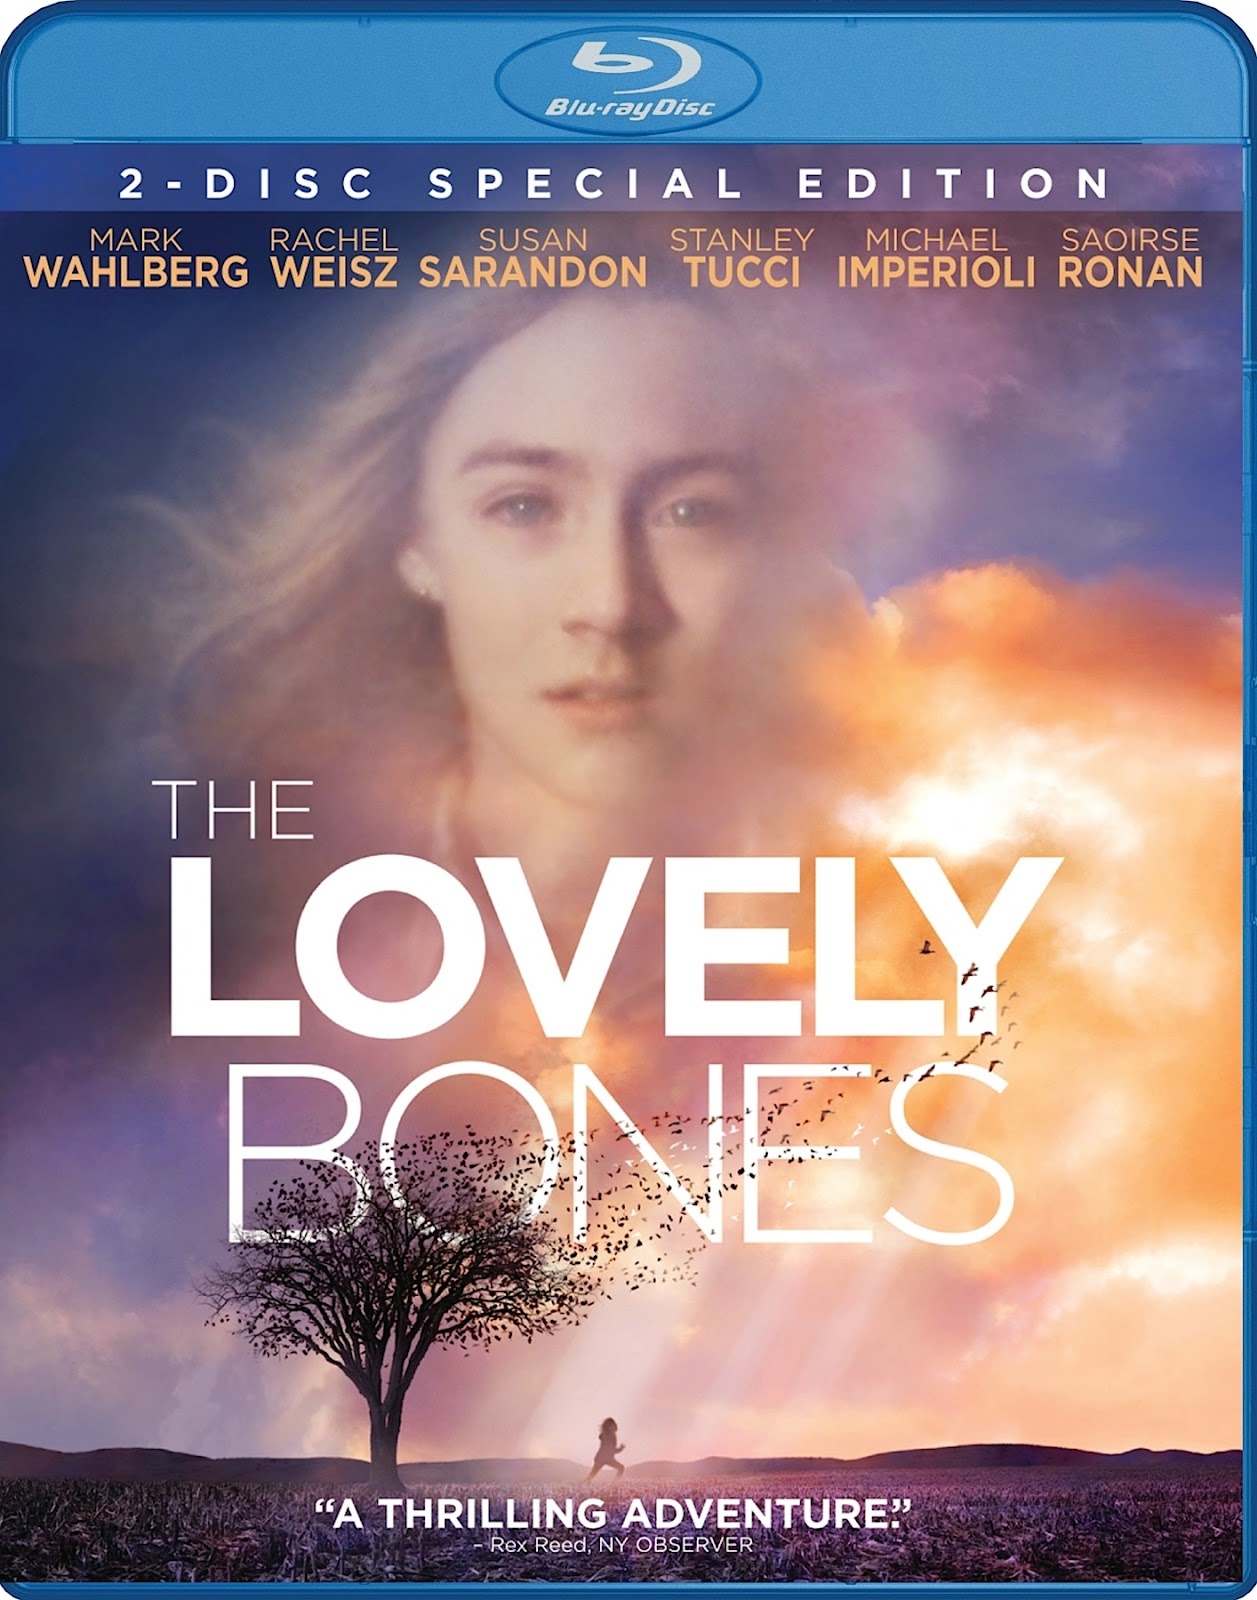 the lovely bones detailed quote synopsis Note: the book spoiler is always looking for a nice little synopsis (including the ending) of any current best selling book.